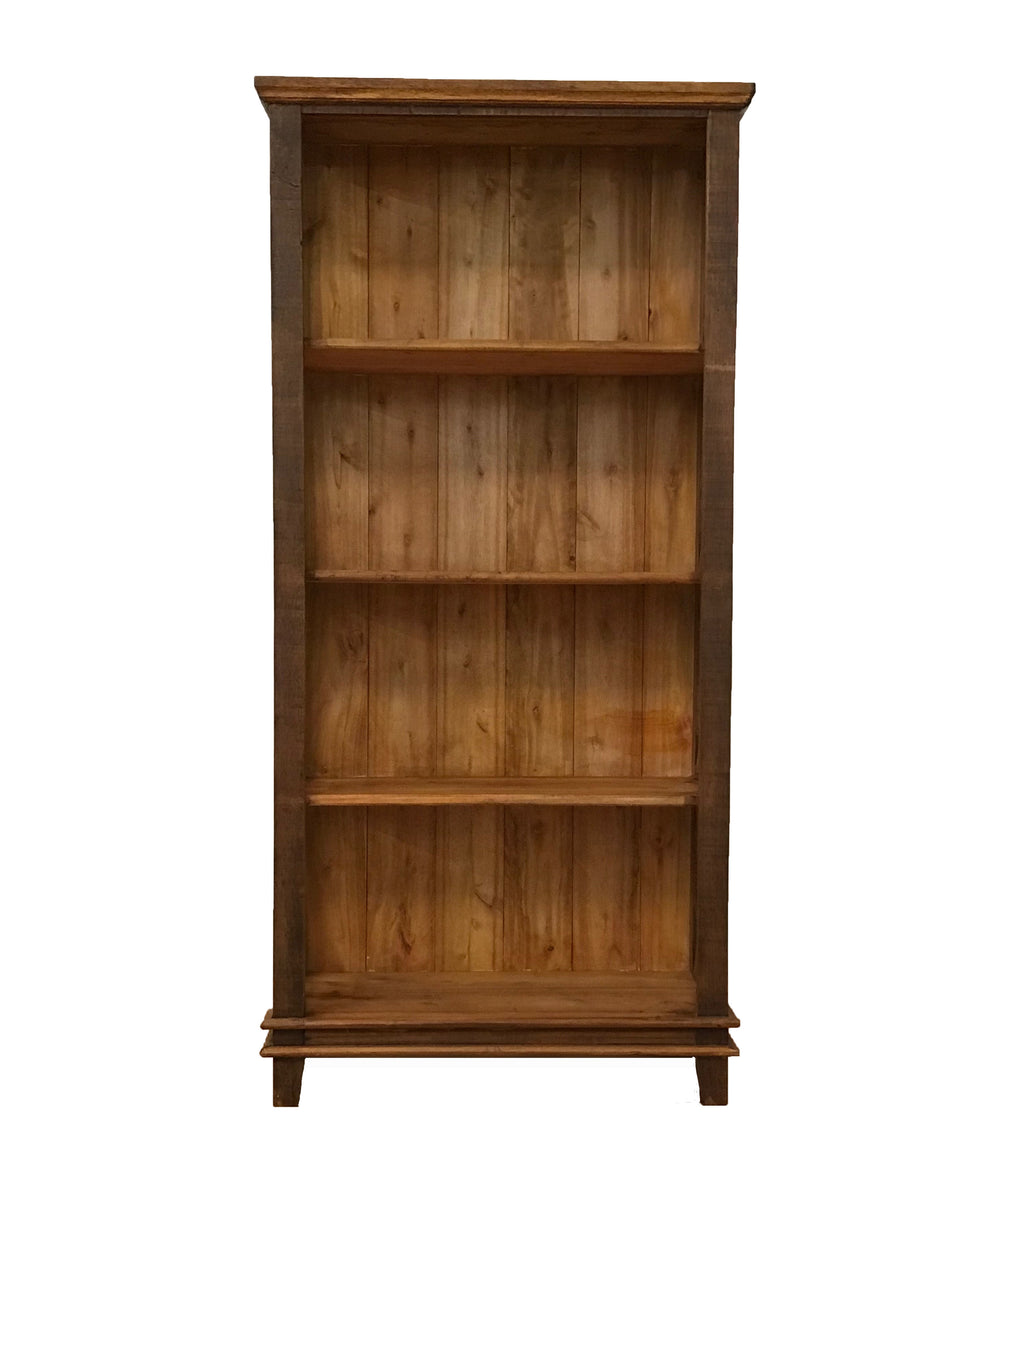 reclaimed wood bookcase - Reclaimed Wood Bookshelves